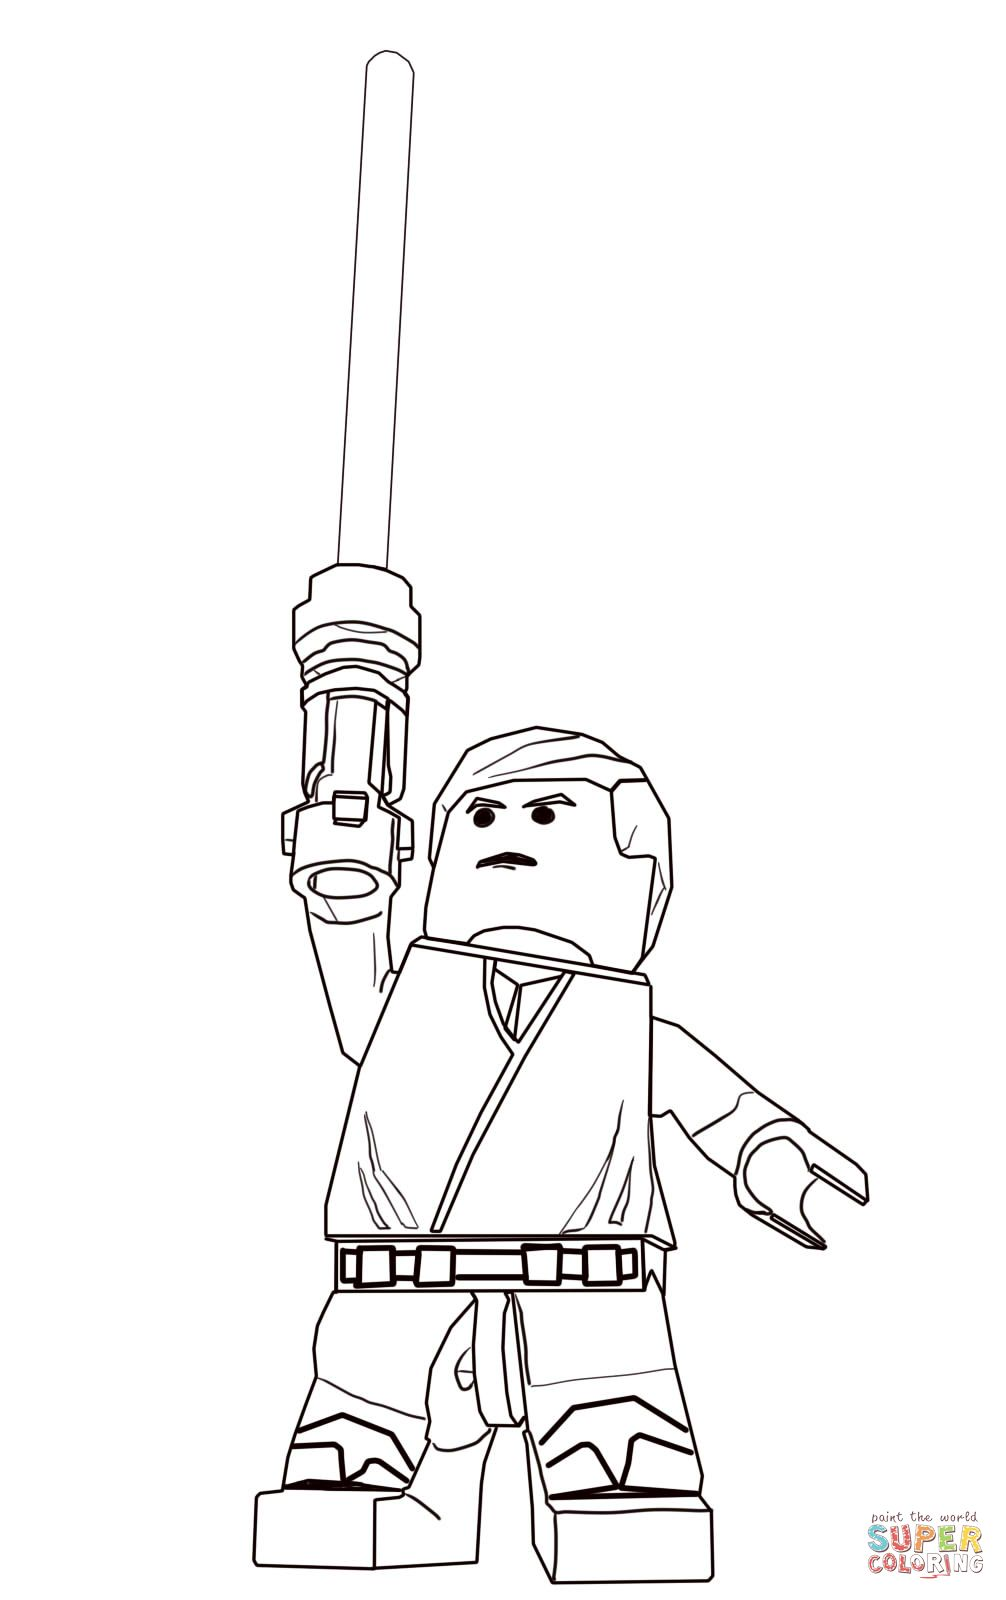 Lego Star Wars Luke Skywalker Coloring Page Supercoloring Com Lego Coloring Pages Star Wars Colors Lego Star Wars Party